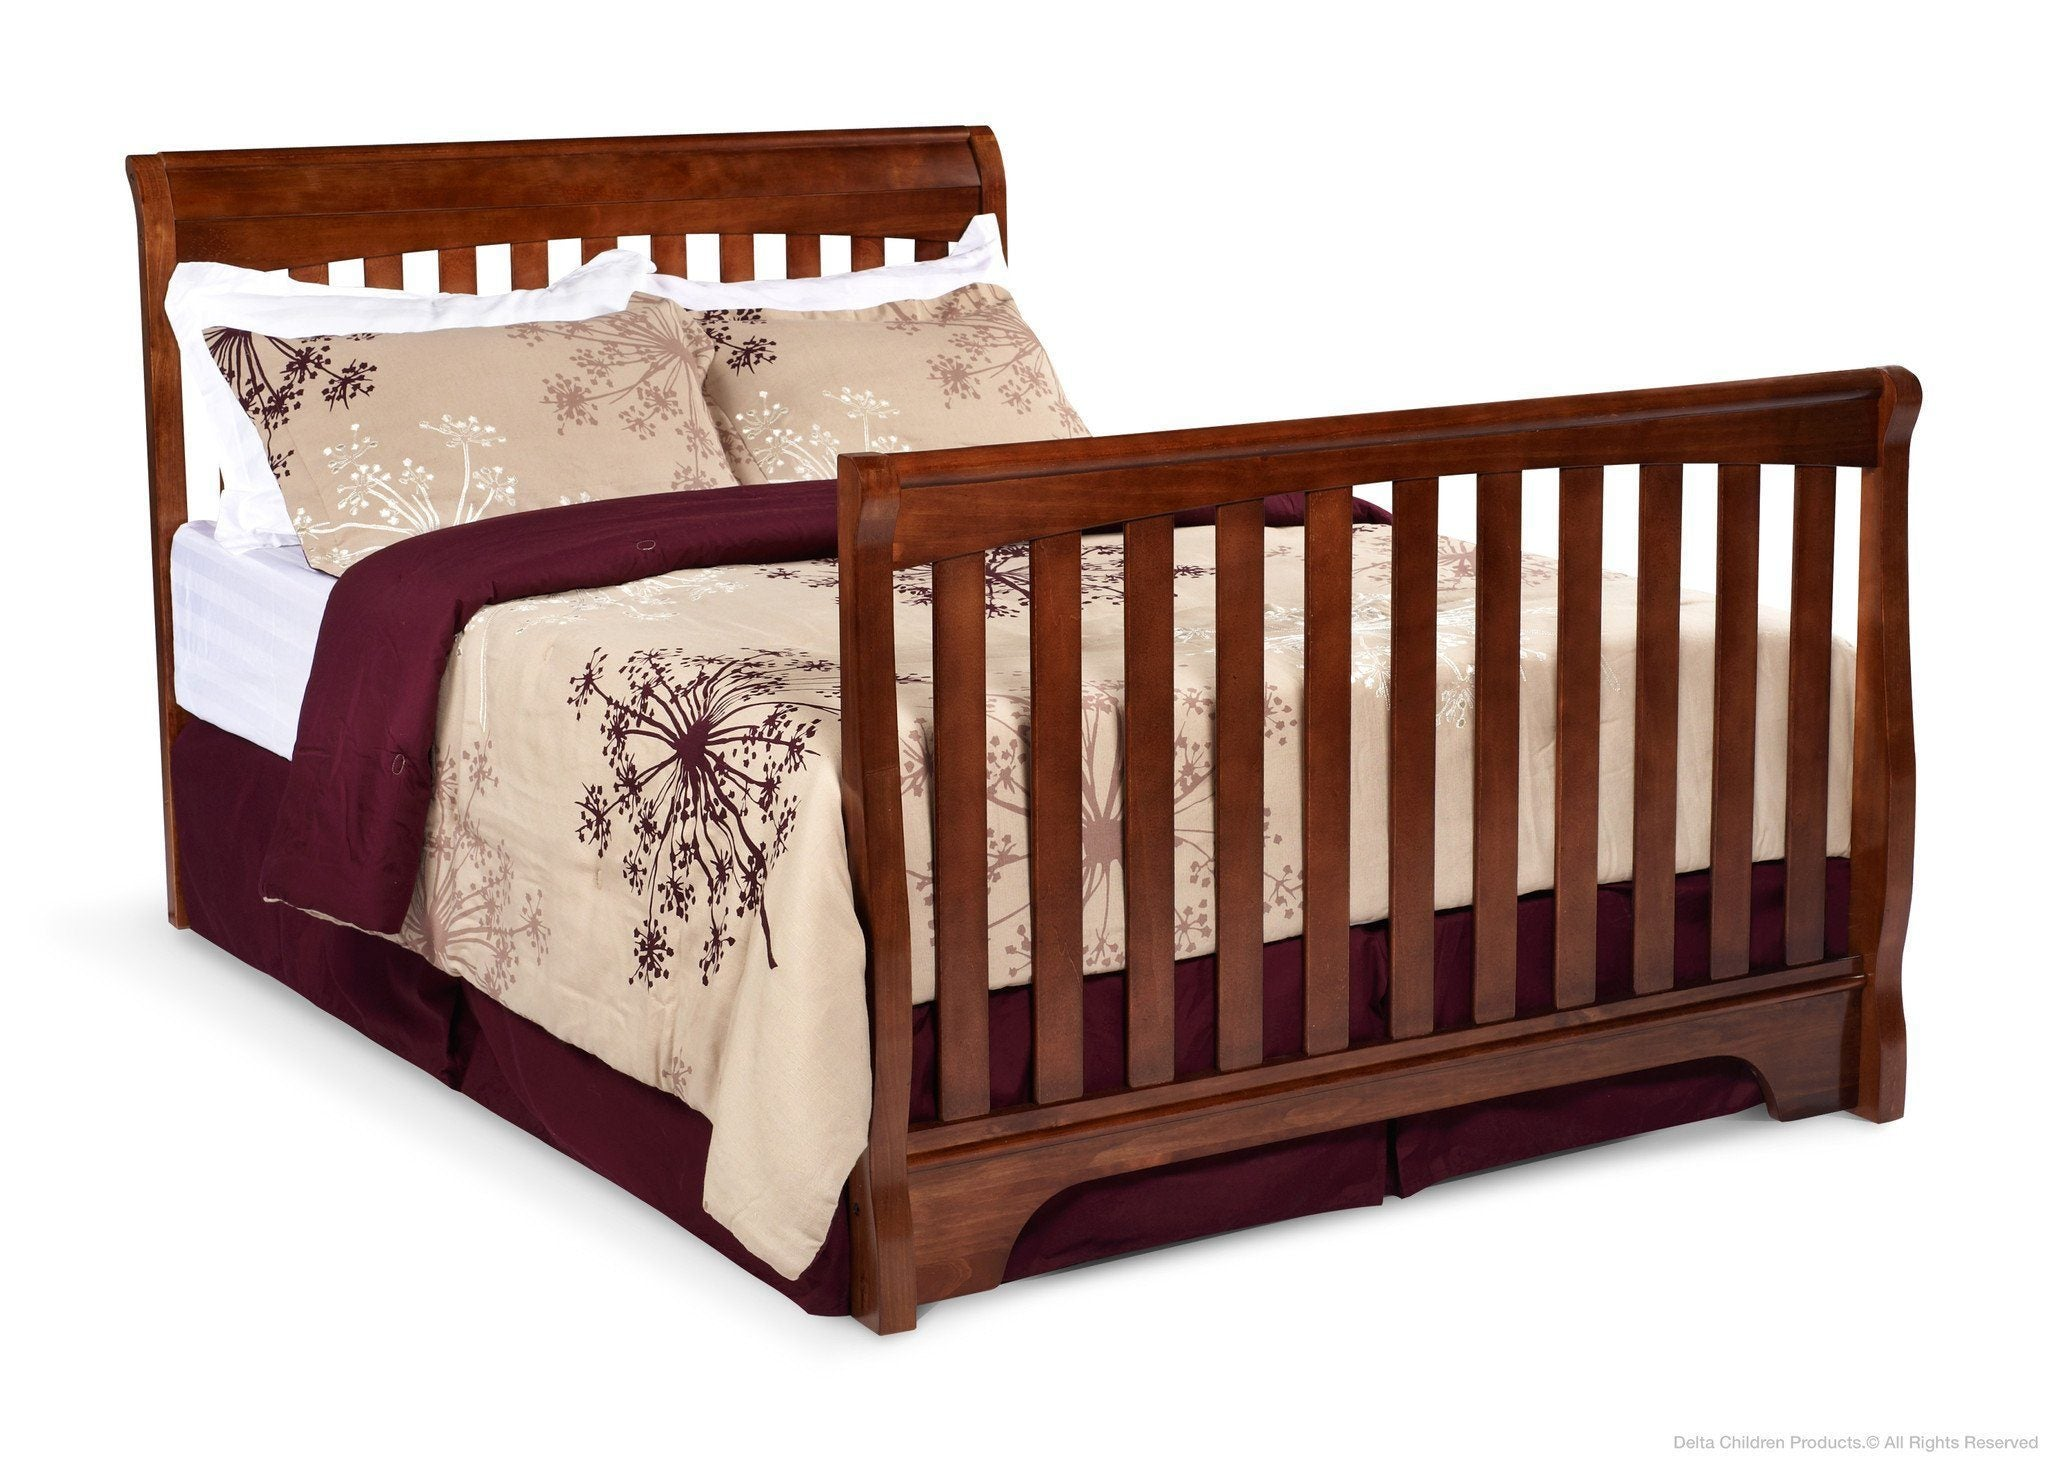 Delta Childrens Spiced Cinnamon (209) Eclipse 4-in-1 Full Bed Conversion b4b